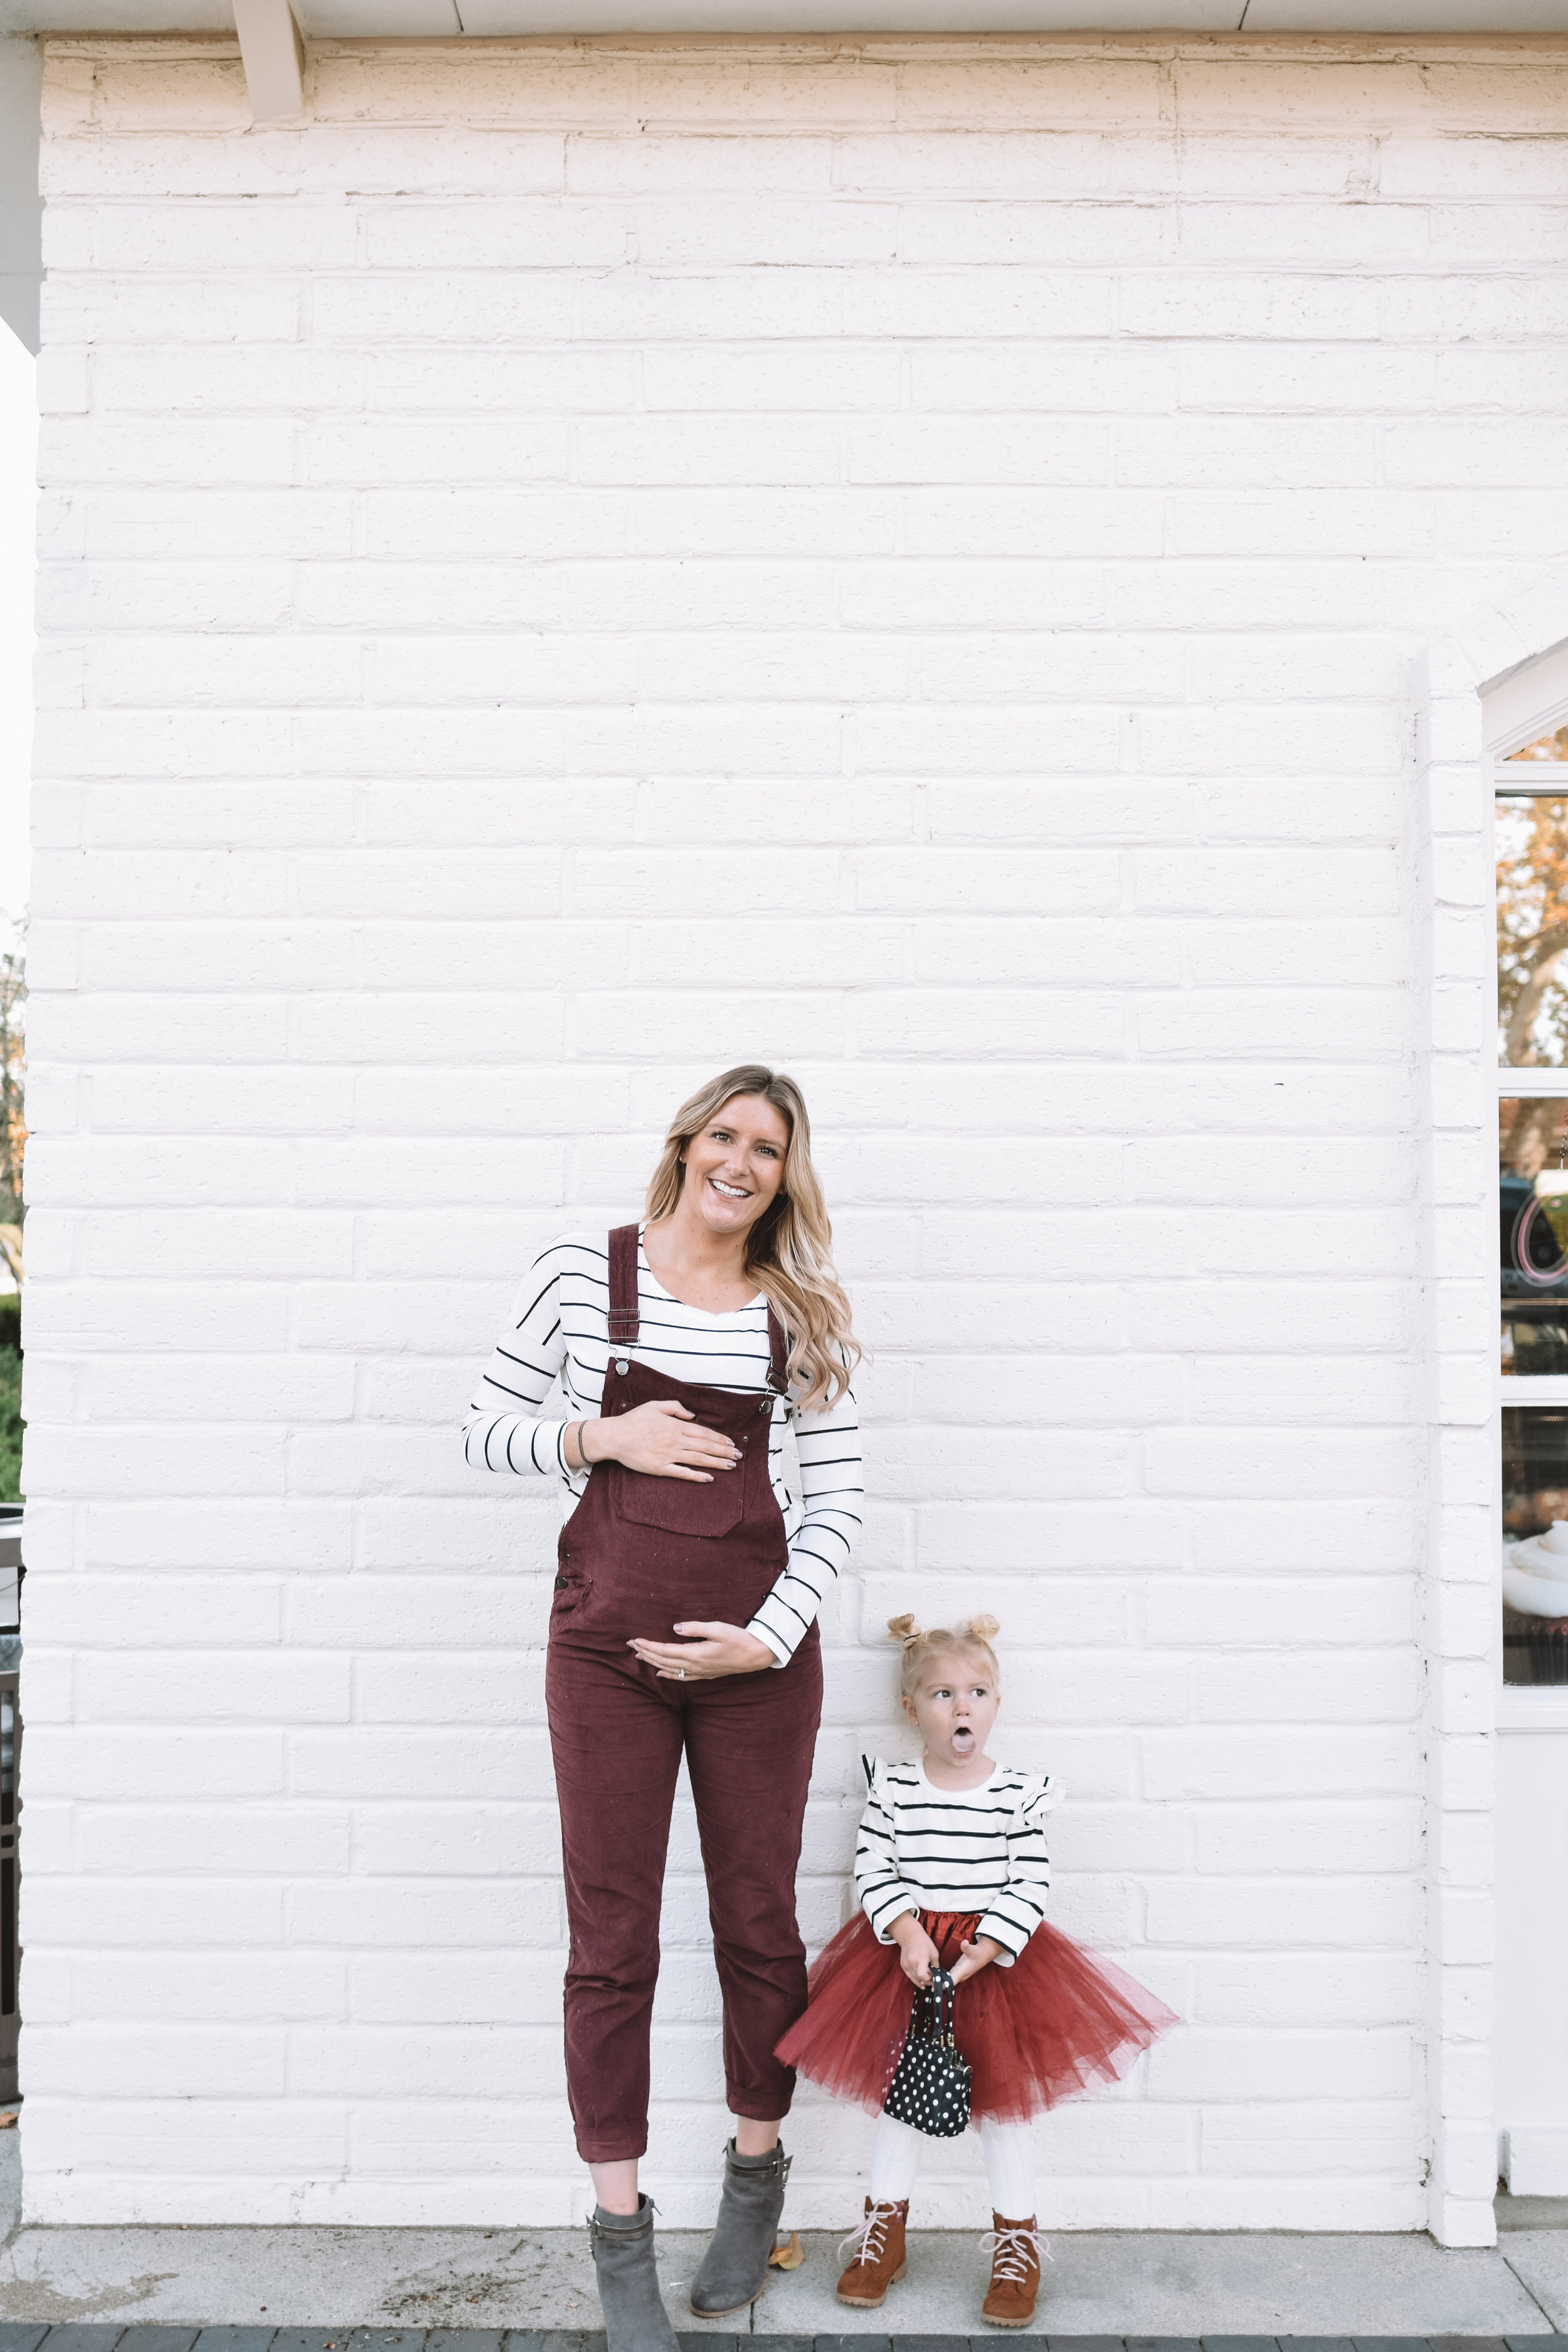 Cute Maternity Fashion Overalls - Mommy and Me Clothes - The Overwhelmed Mommy Blogger